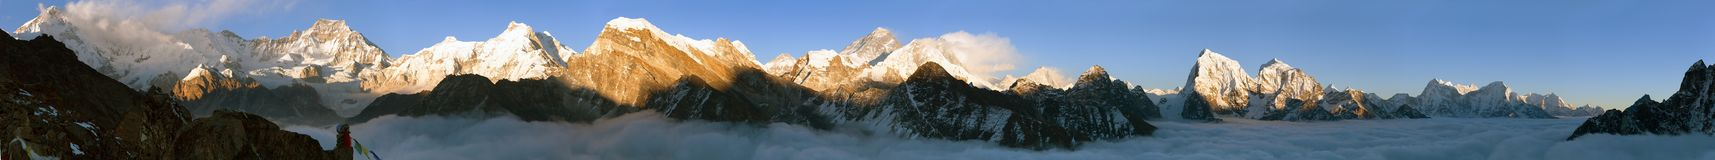 View of Mount Everest, Lhotse, Makalu and Cho Oyu Stock Photos